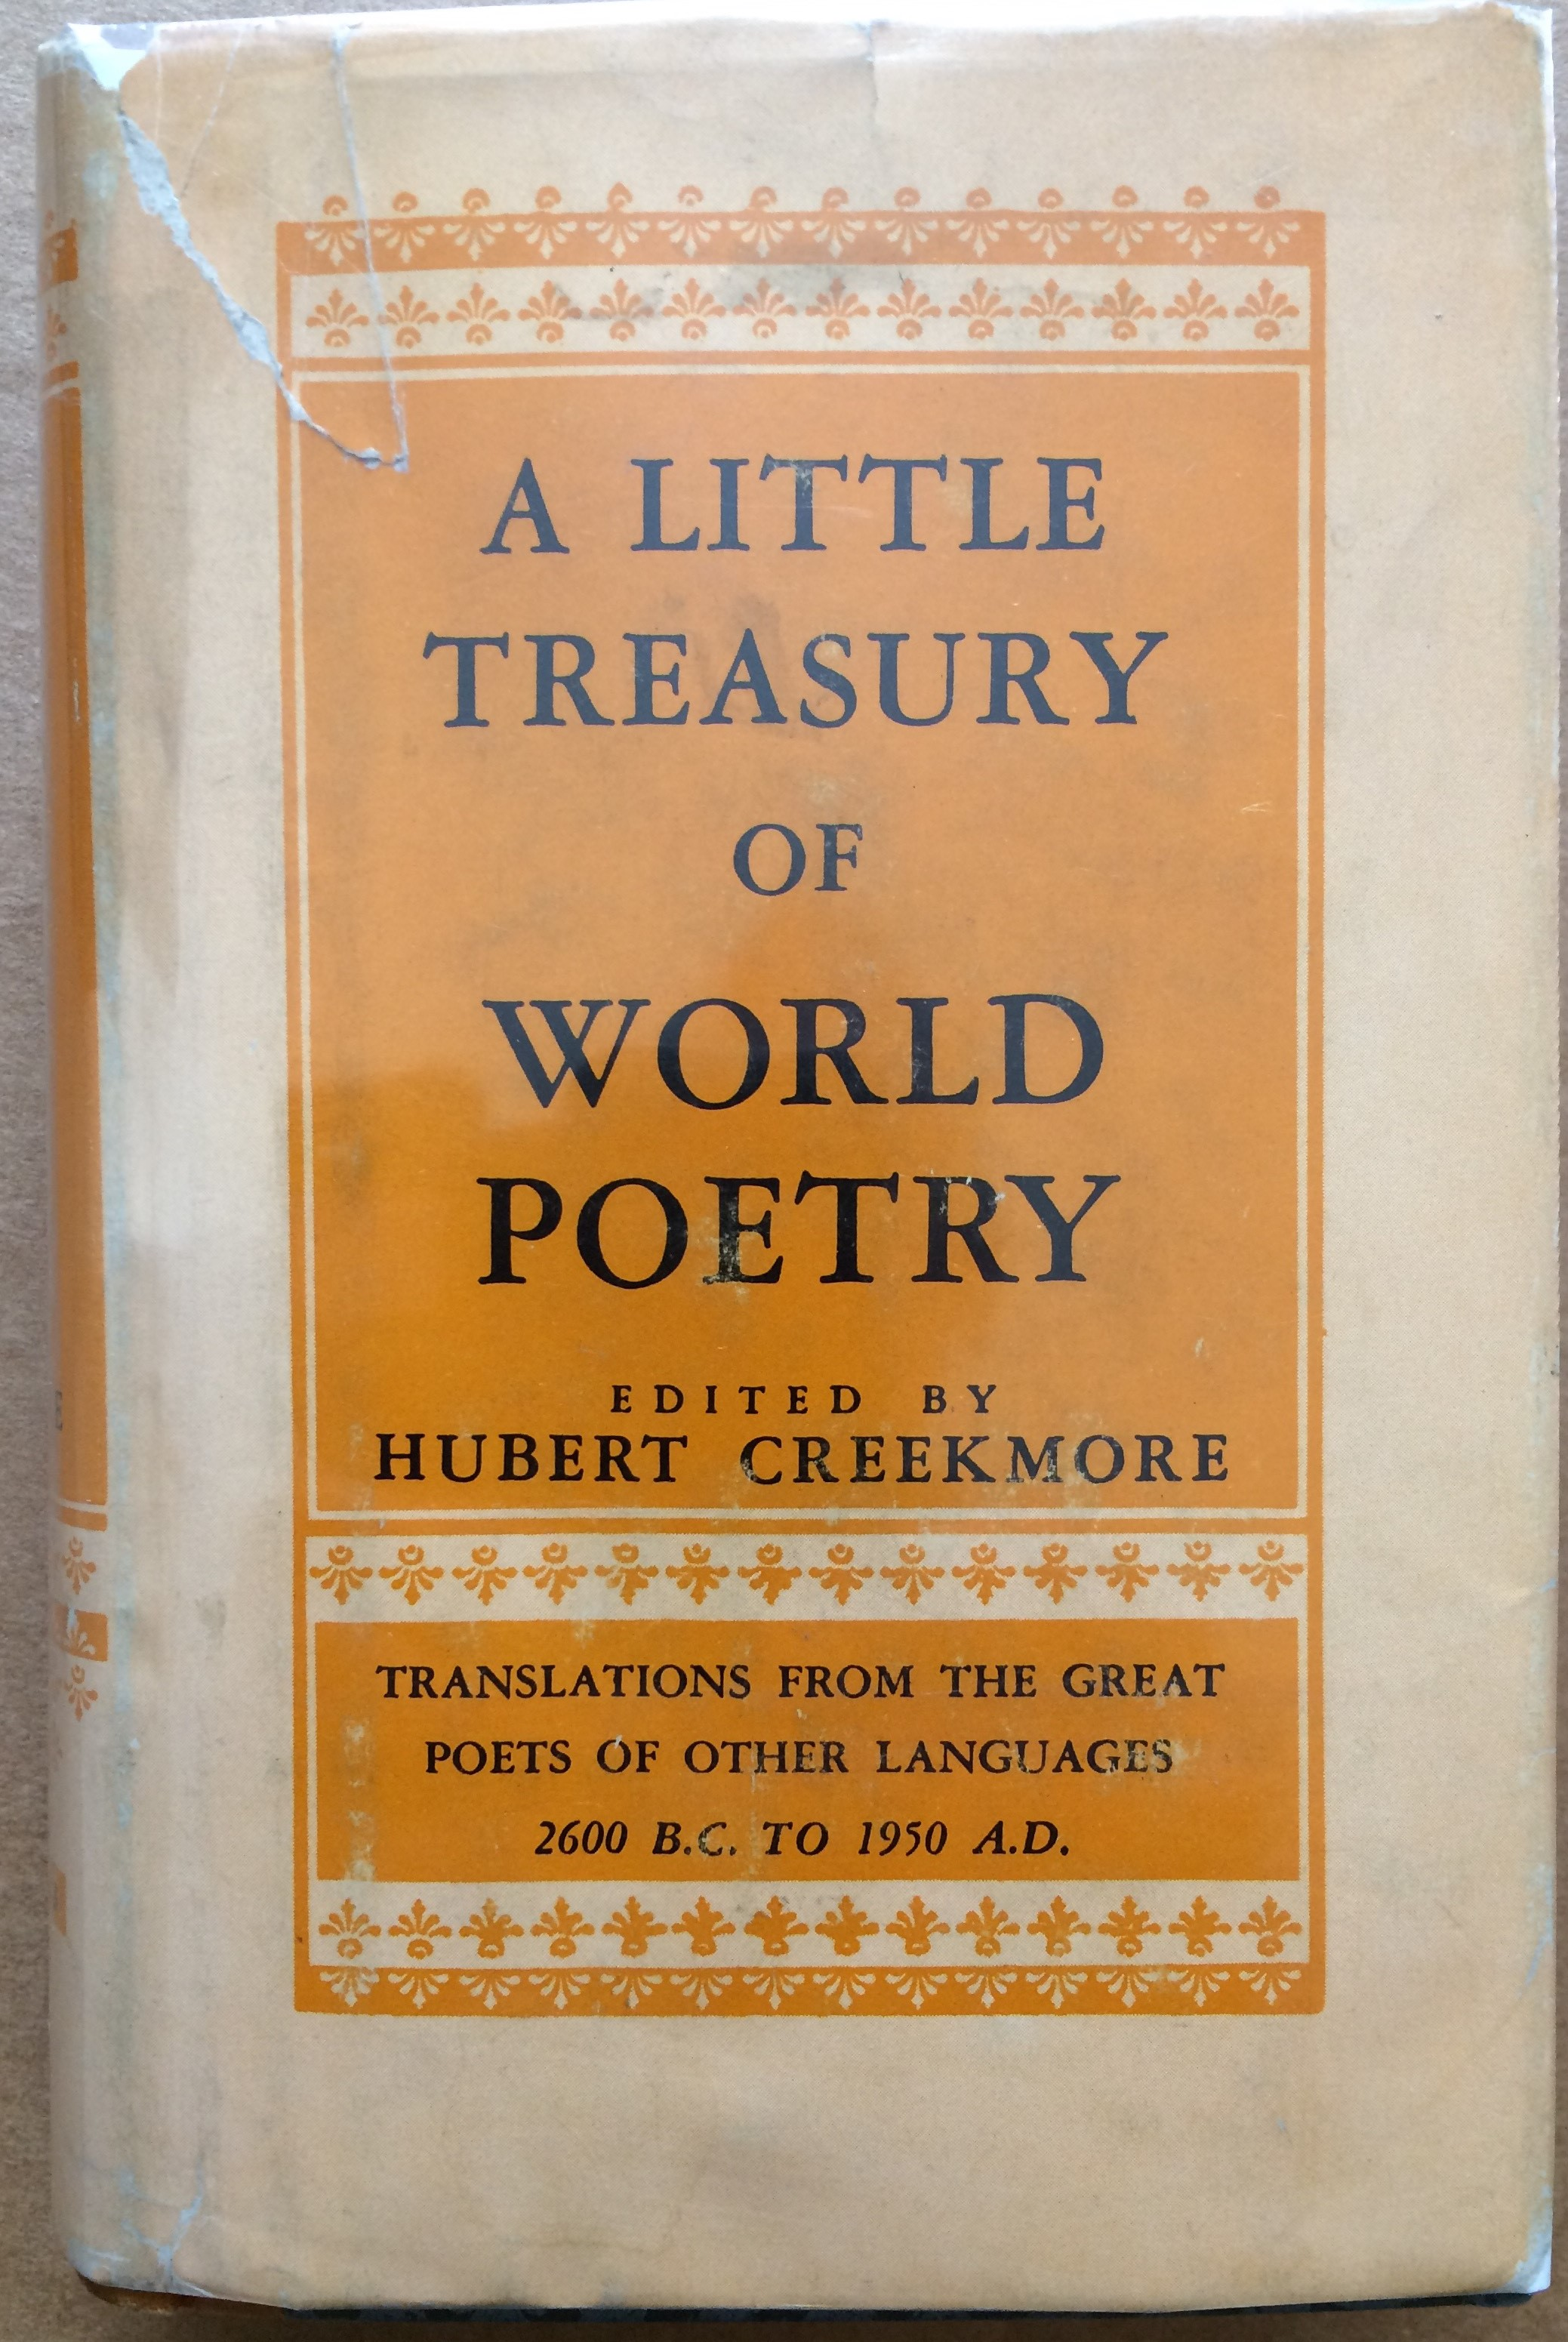 Image for A Little Treasury of World Poetry, Translations from the Great Poets of Other Languages  2600 B.C. to 1950 A.D.